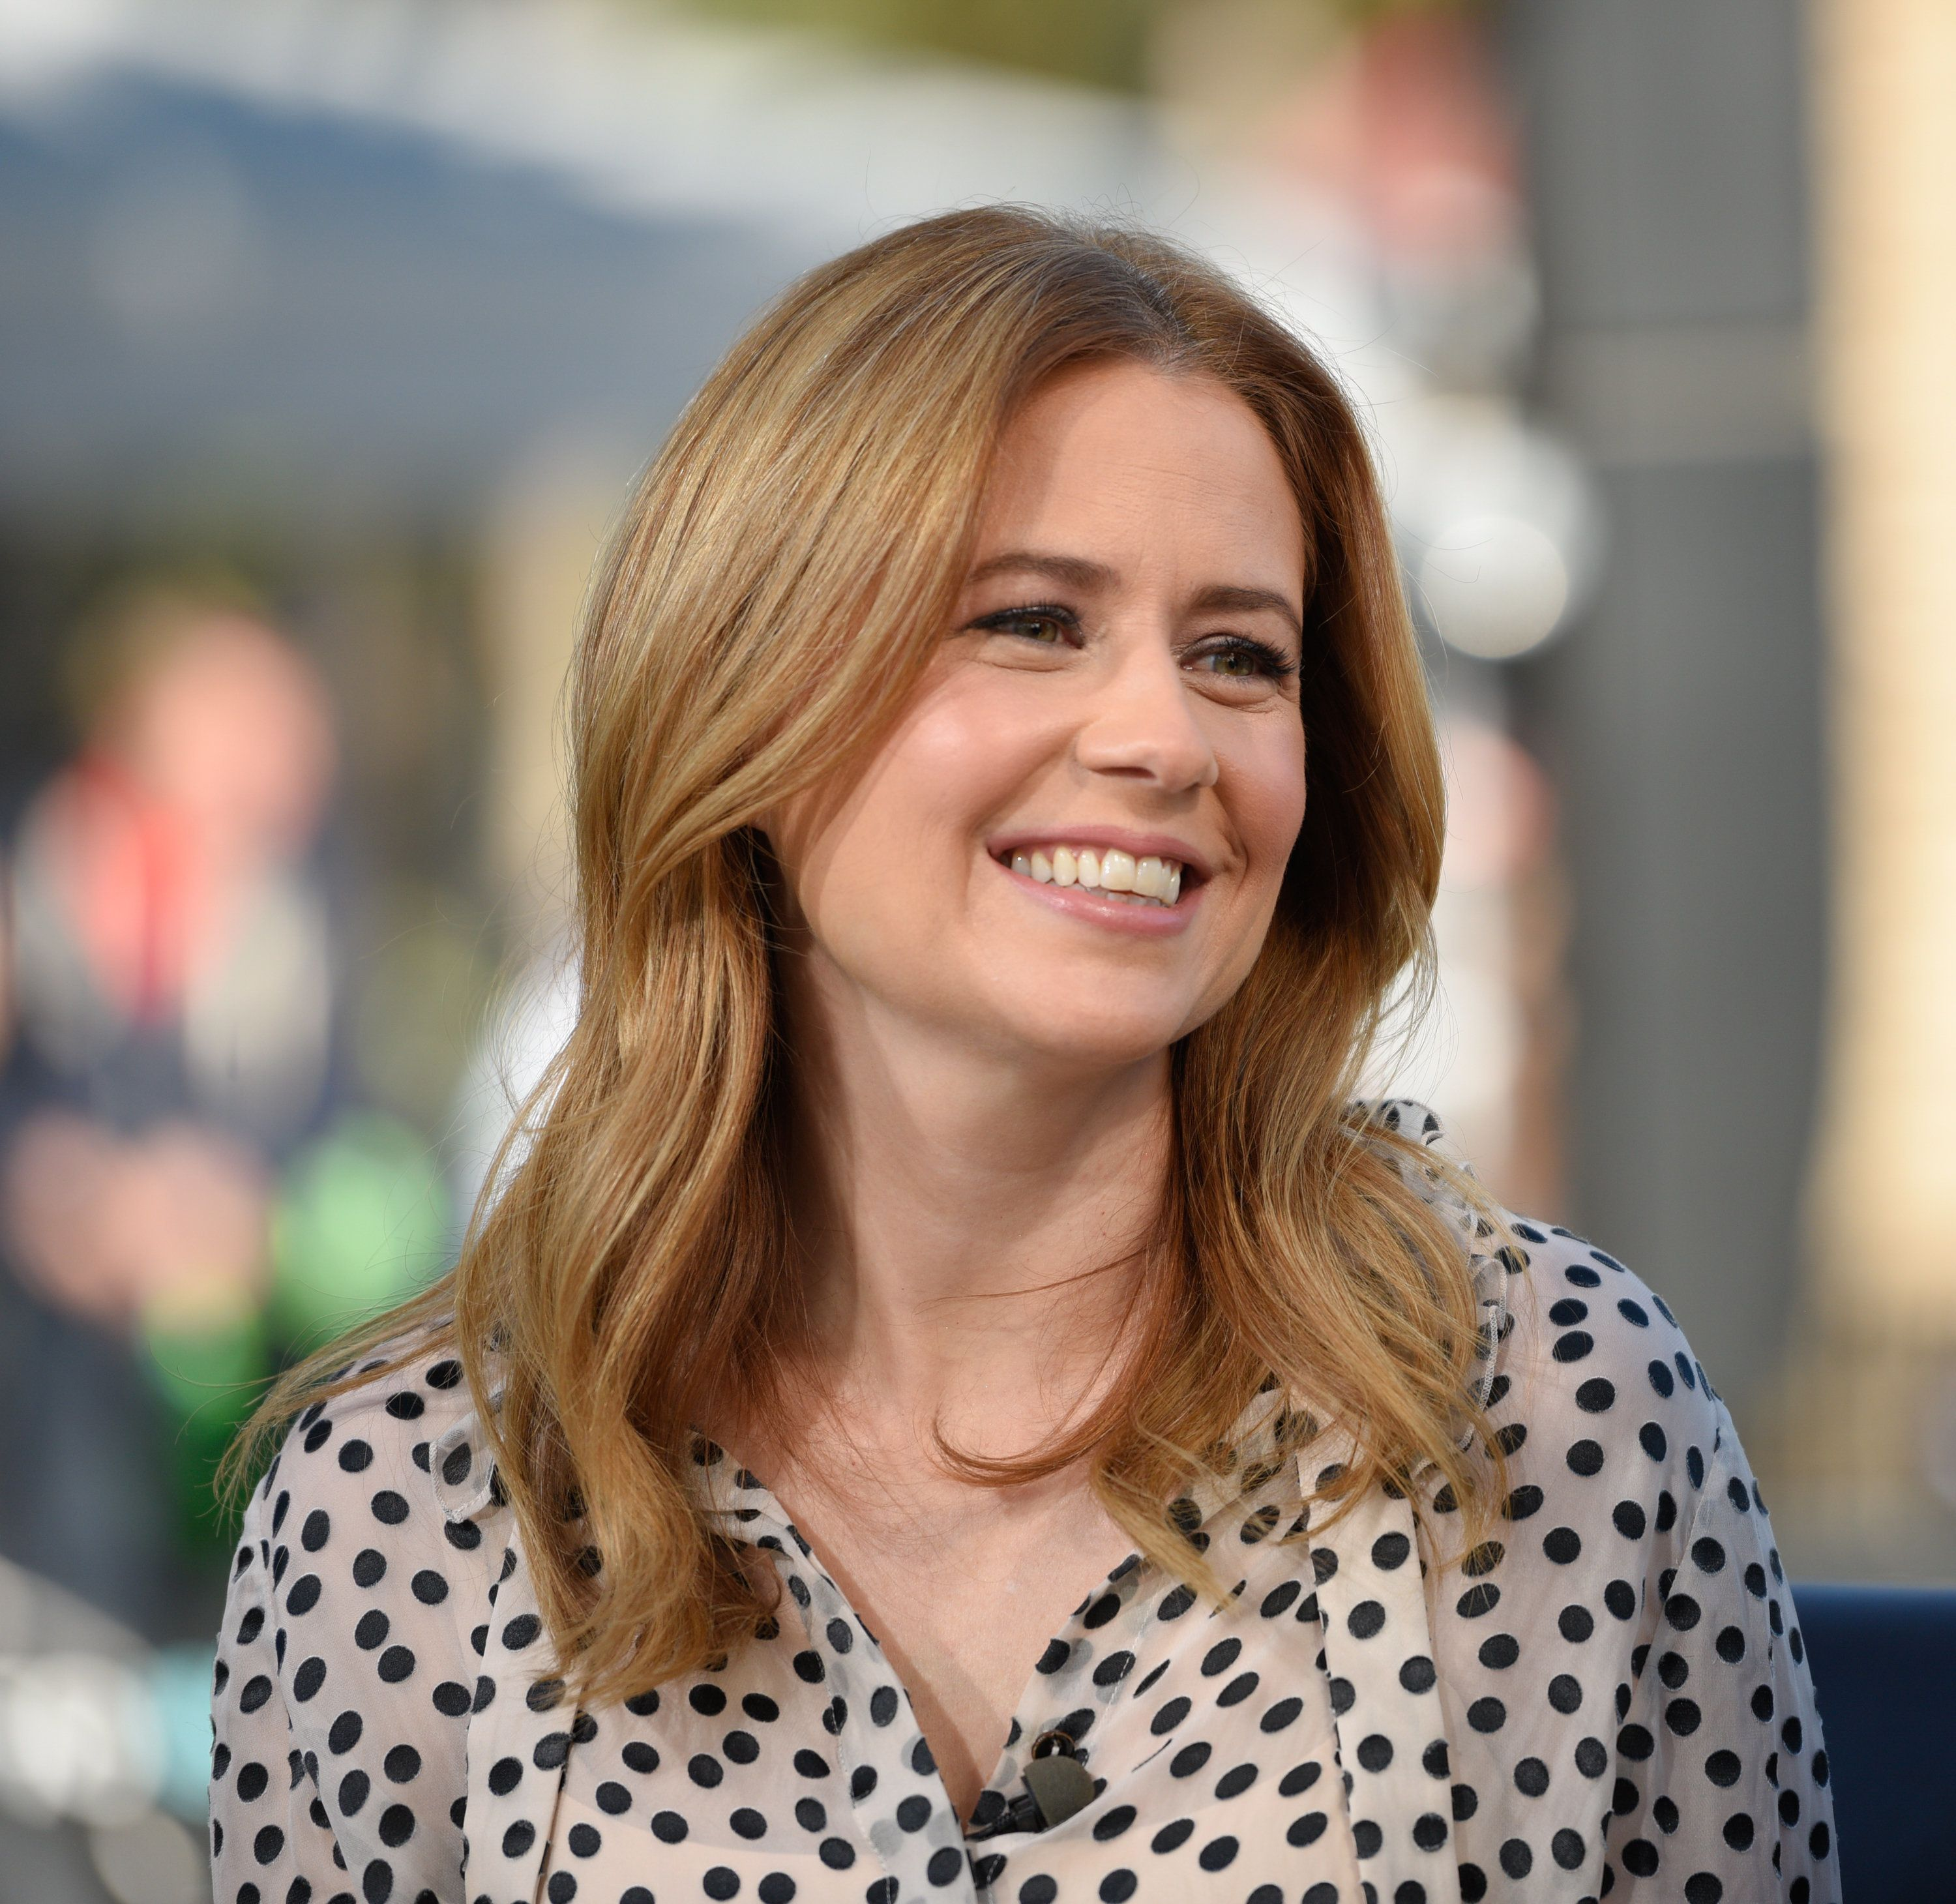 """Jenna Fischer, star of """"The Office"""" and """"Splitting Up Together,"""" has often let fans in on her life as a mom."""